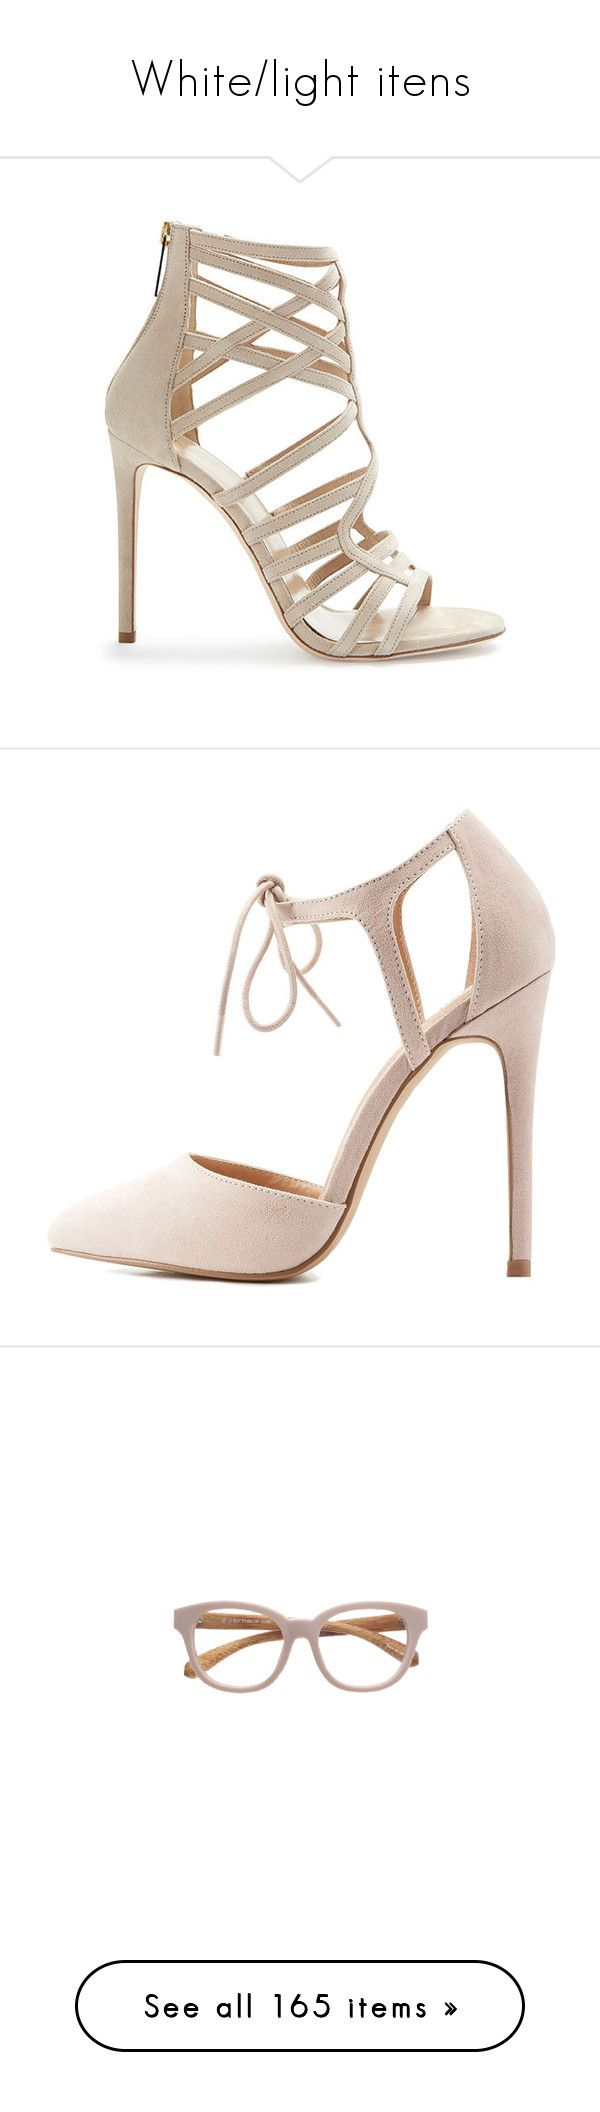 """White/light itens"" by malugr ❤ liked on Polyvore featuring shoes, sandals, heels, sapatos, apparel & accessories, nude suede shoes, multi coloured sandals, heeled sandals, strap heel sandals and nude heel sandals"